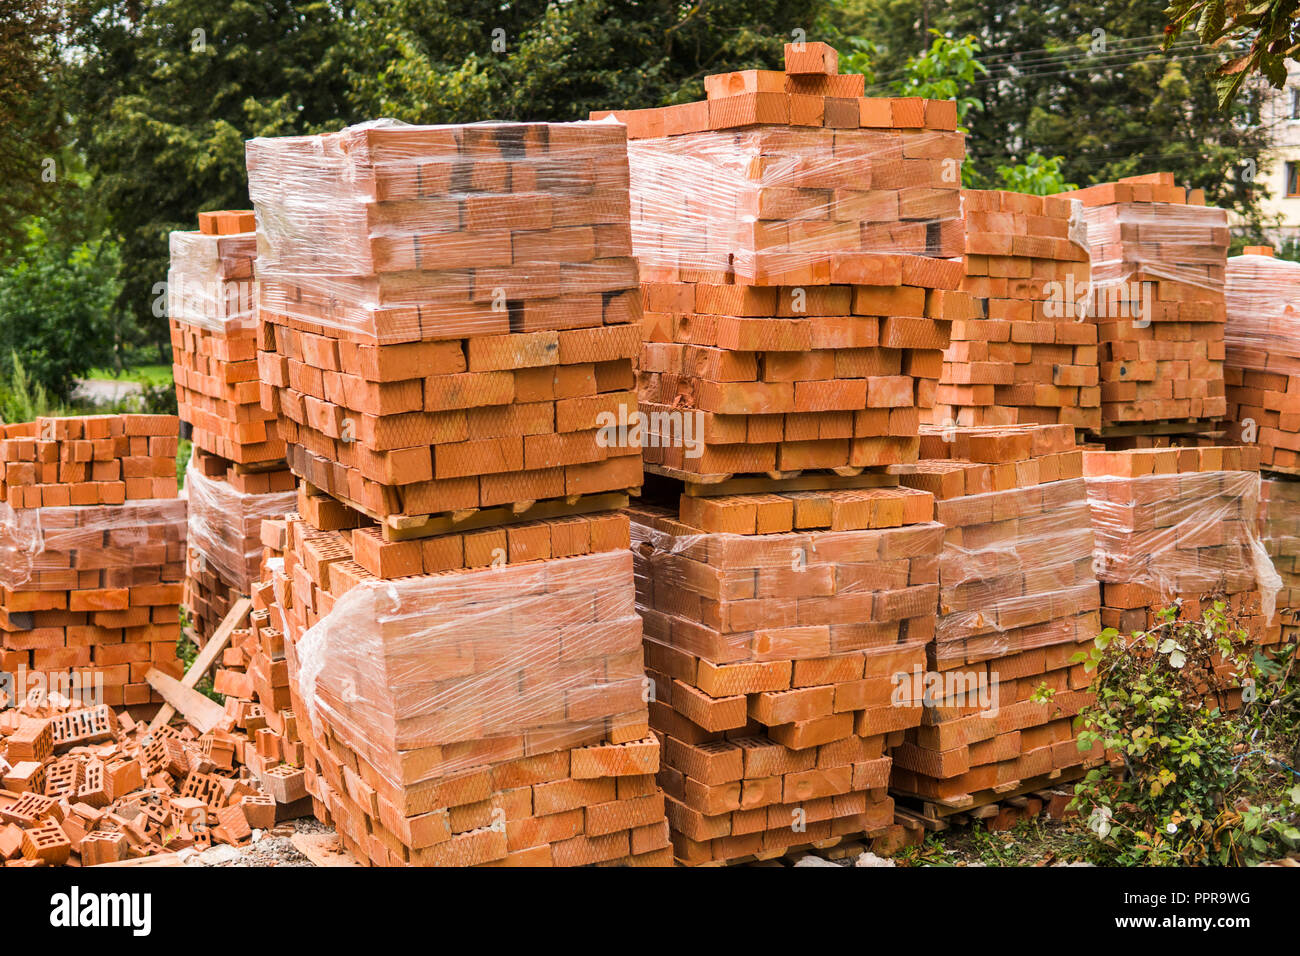 Stacked Bricks High Resolution Stock Photography And Images Alamy